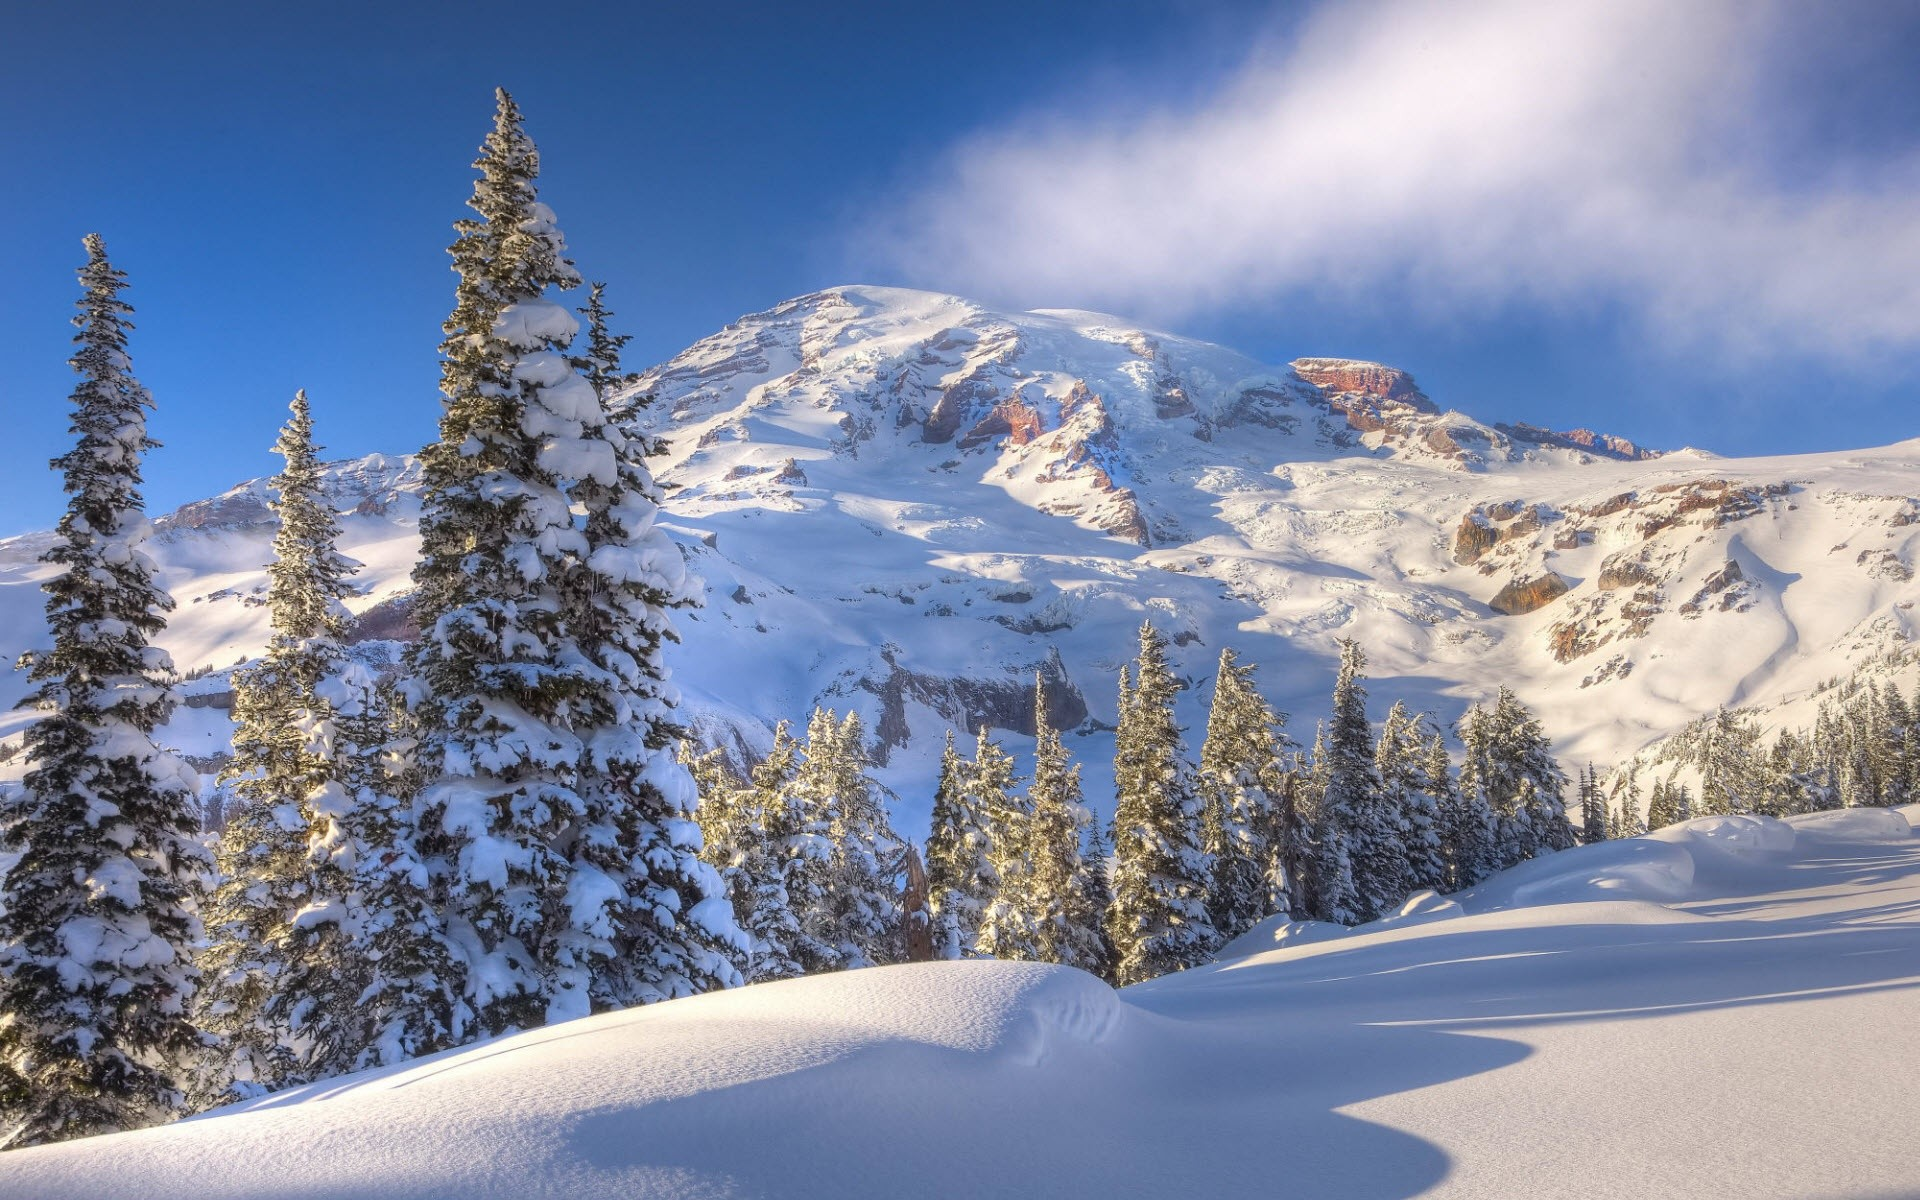 Snowy Winter Mountain Picture wallpapers (75 Wallpapers) – HD Wallpapers